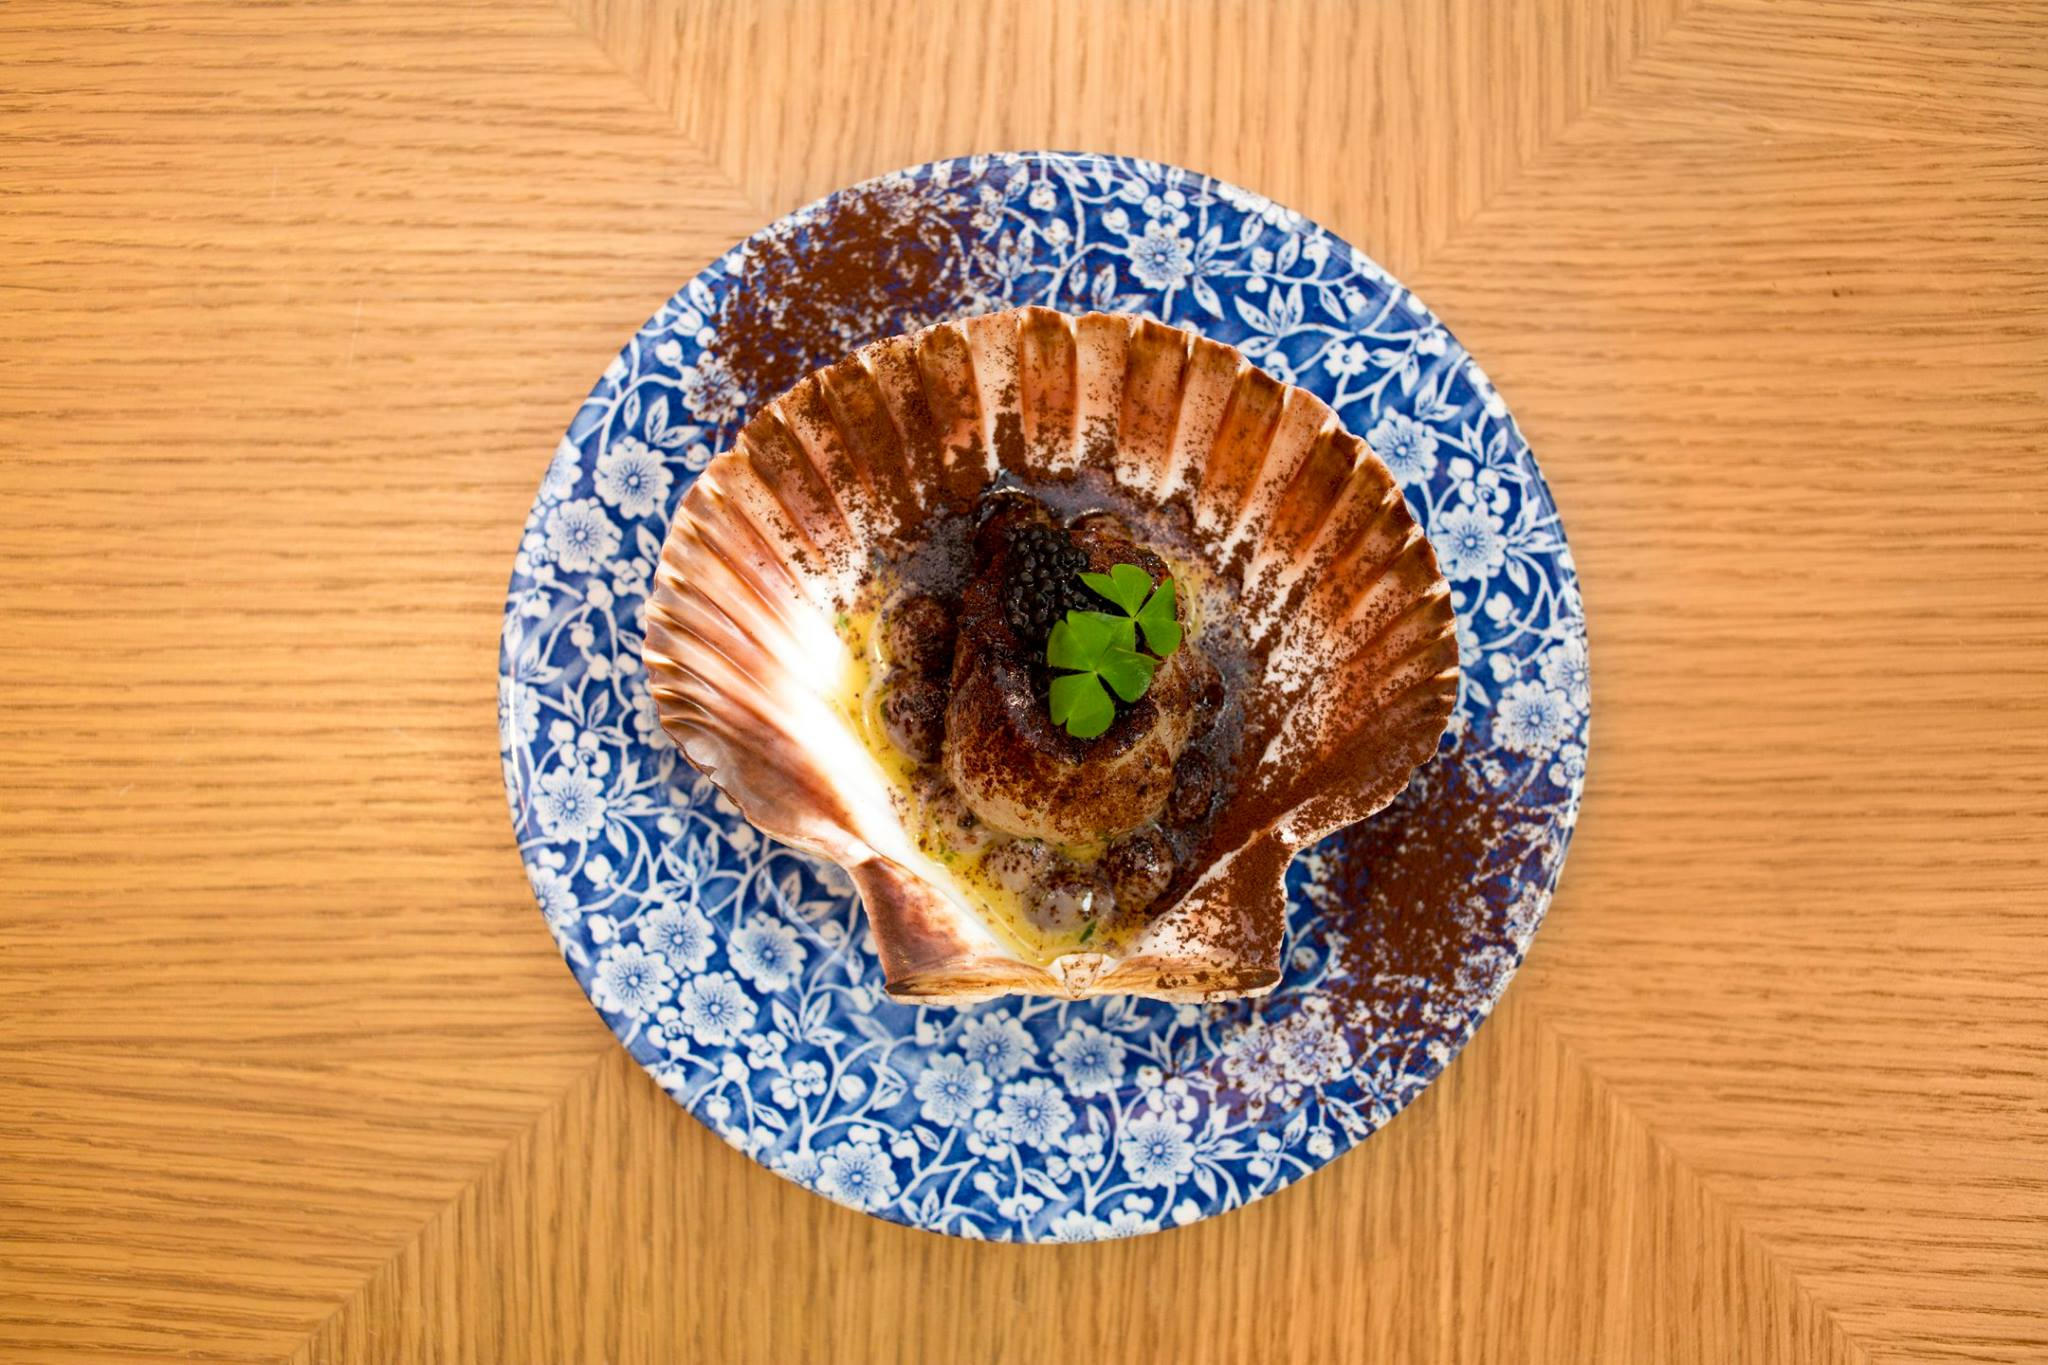 """Scallop"": hand-dived scallop, cooked and served in its shell with borlotti beans, cacao and caviar."